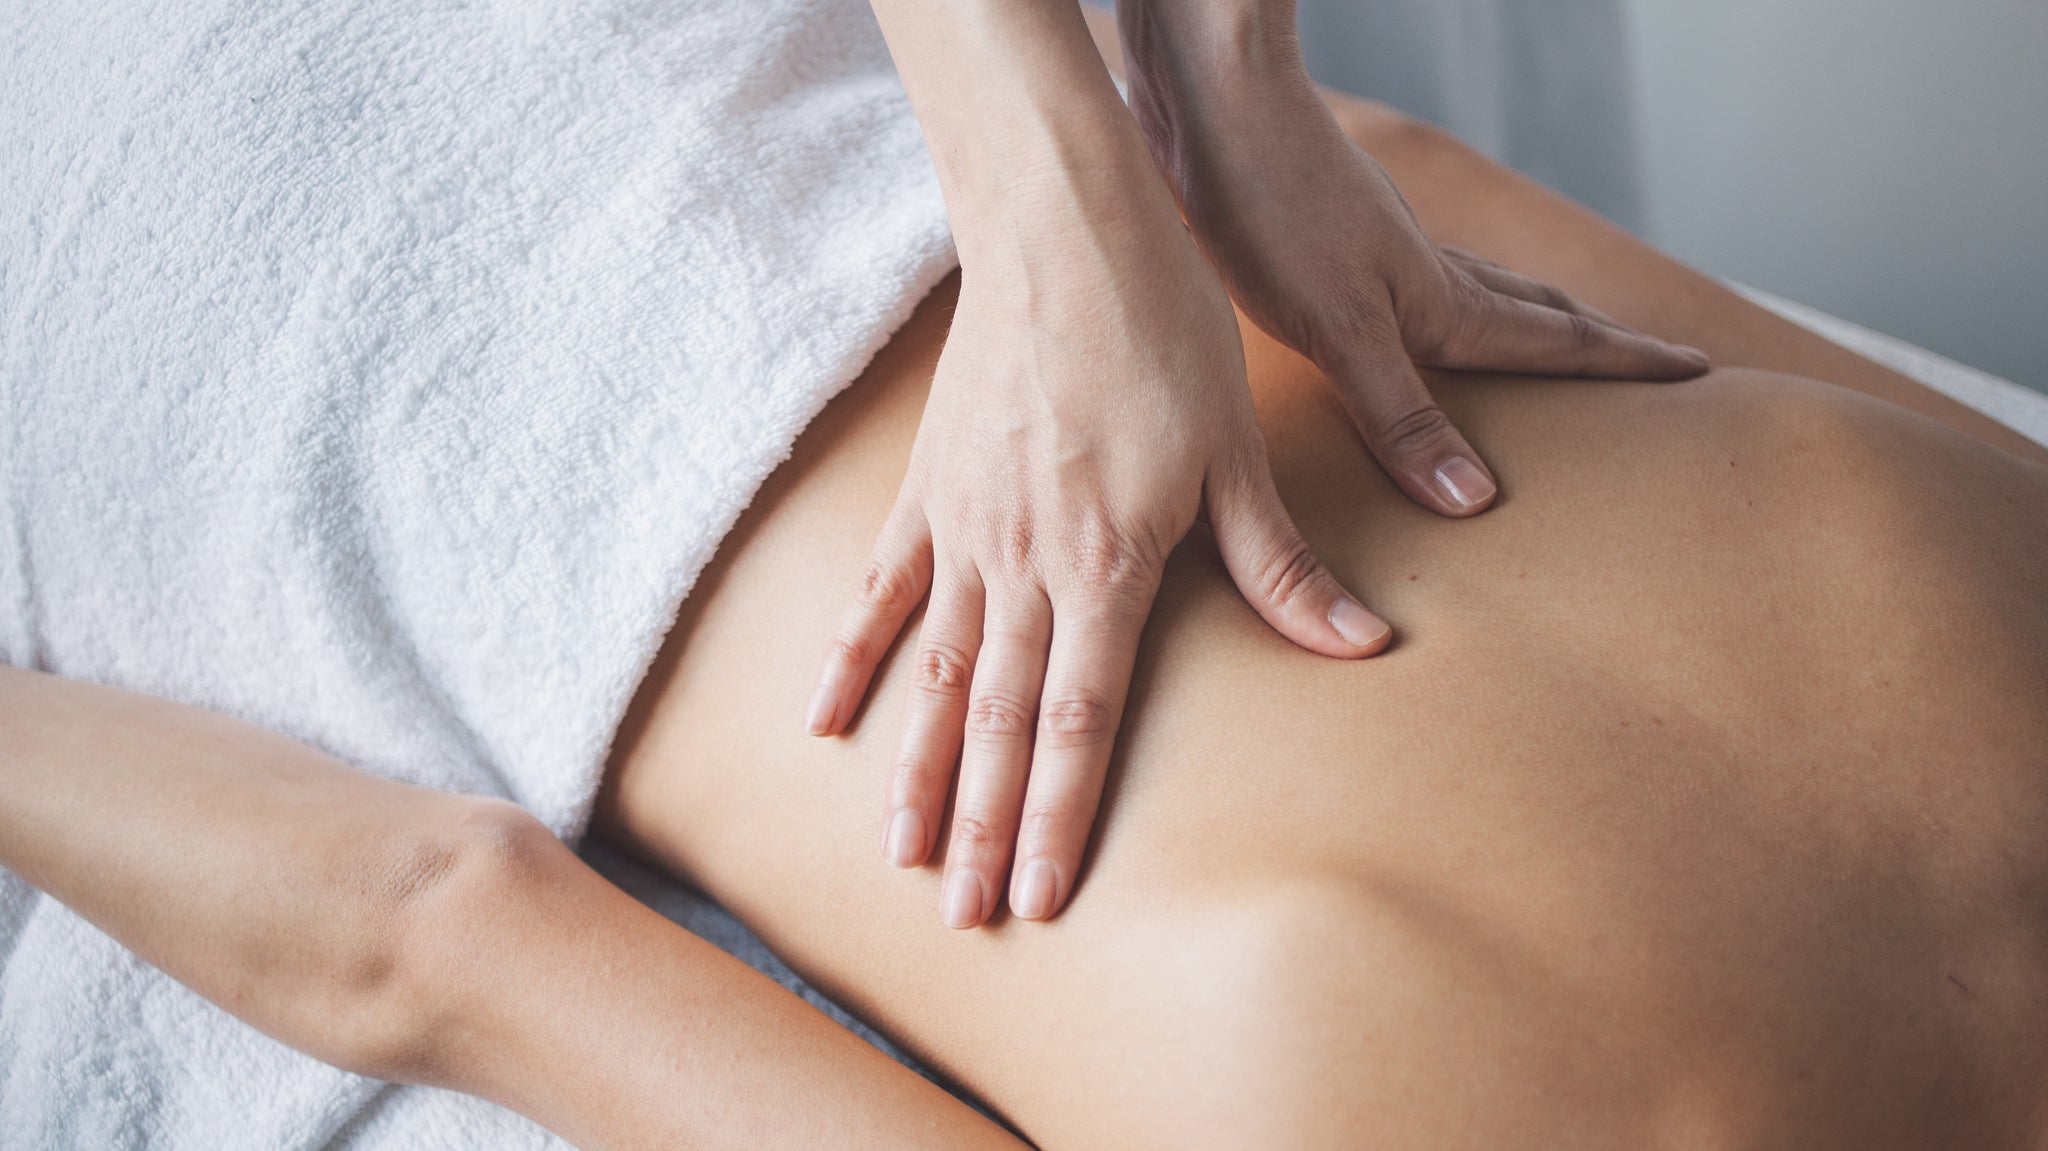 Massage for Pain Relief: What You Need to Know